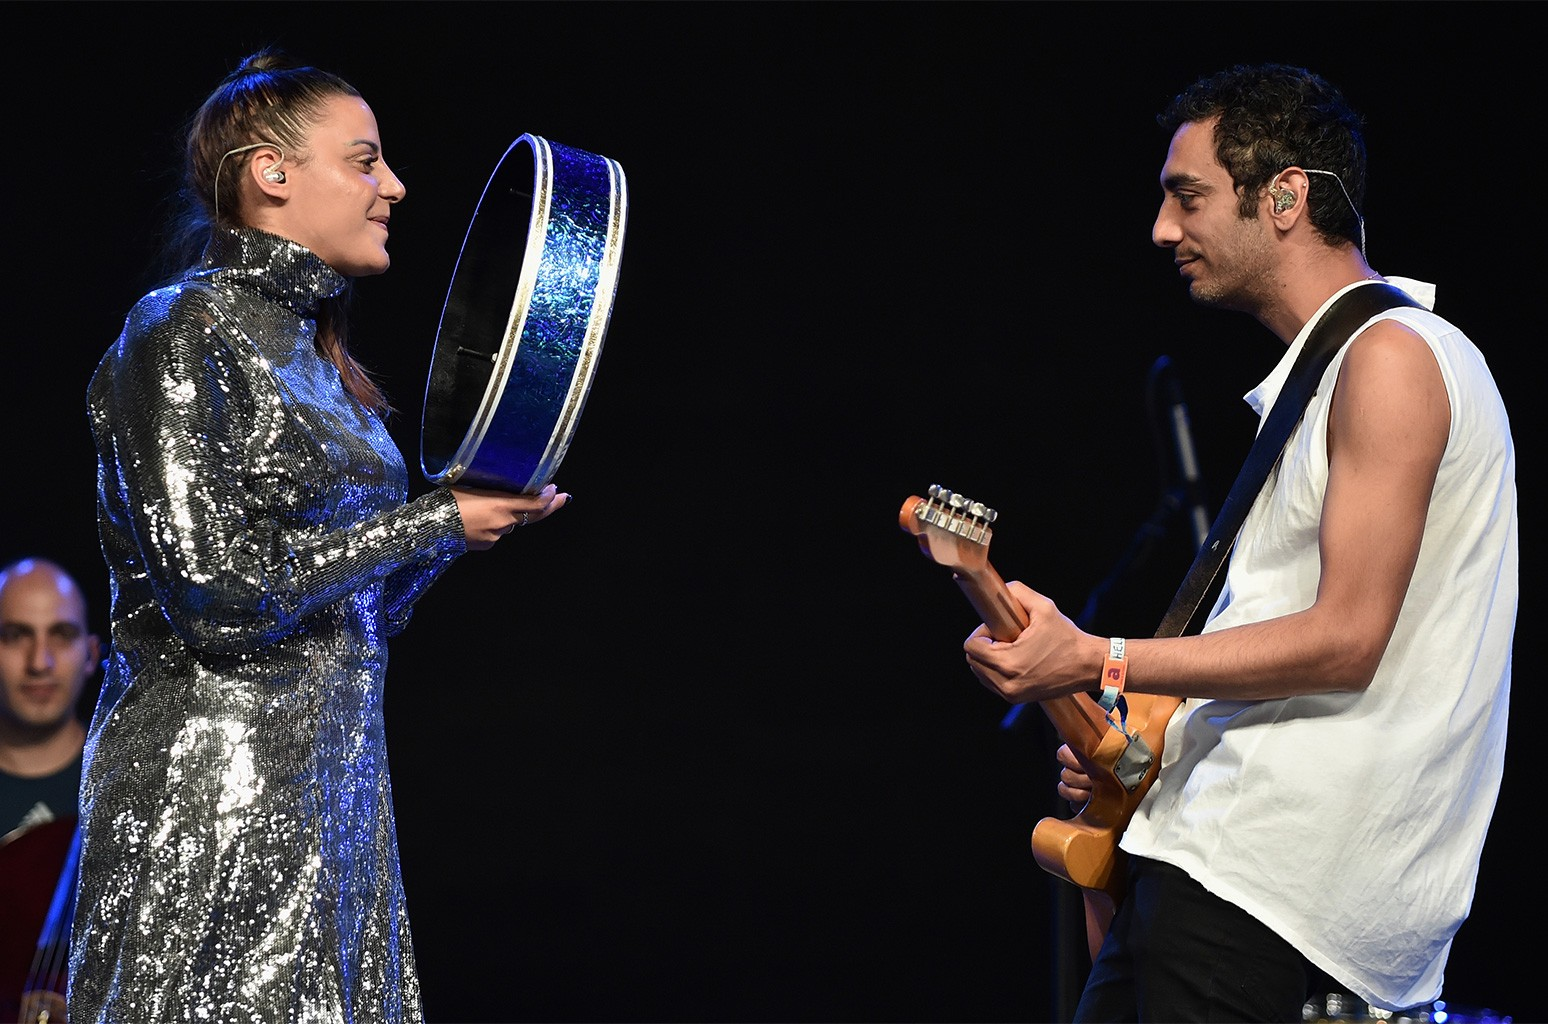 Nasrin Kadry and Dudu Tassa of Dudu Tassa & the Kuwaitis perform at the Gobi Tent during day 1 of the Coachella Valley Music And Arts Festival (Weekend 1) at the Empire Polo Club on April 14, 2017 in Indio, Calif.